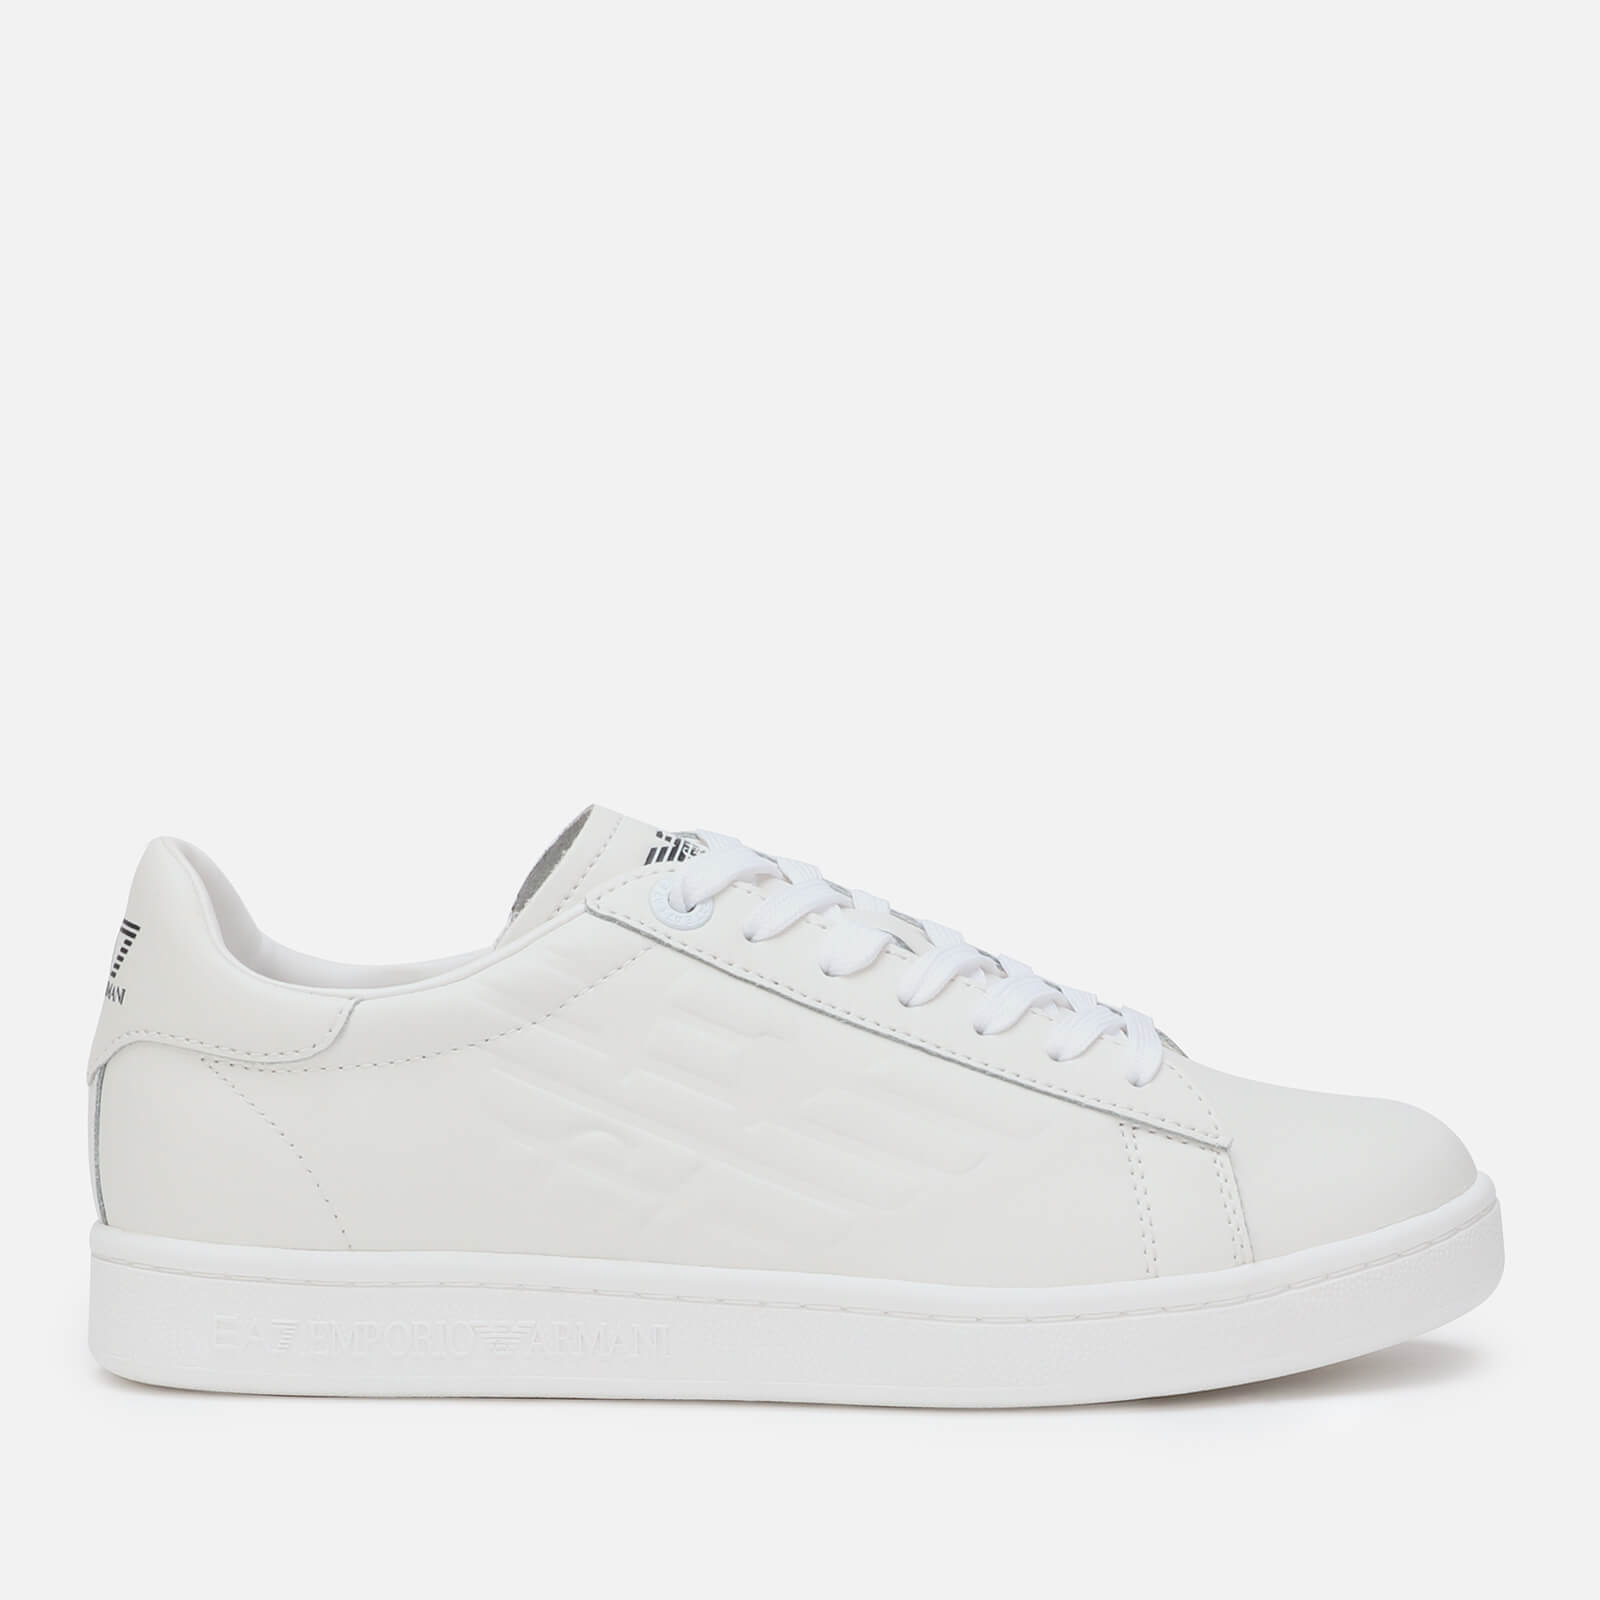 9f810b29 Emporio Armani EA7 Men's Eagle Court Trainers - White/White